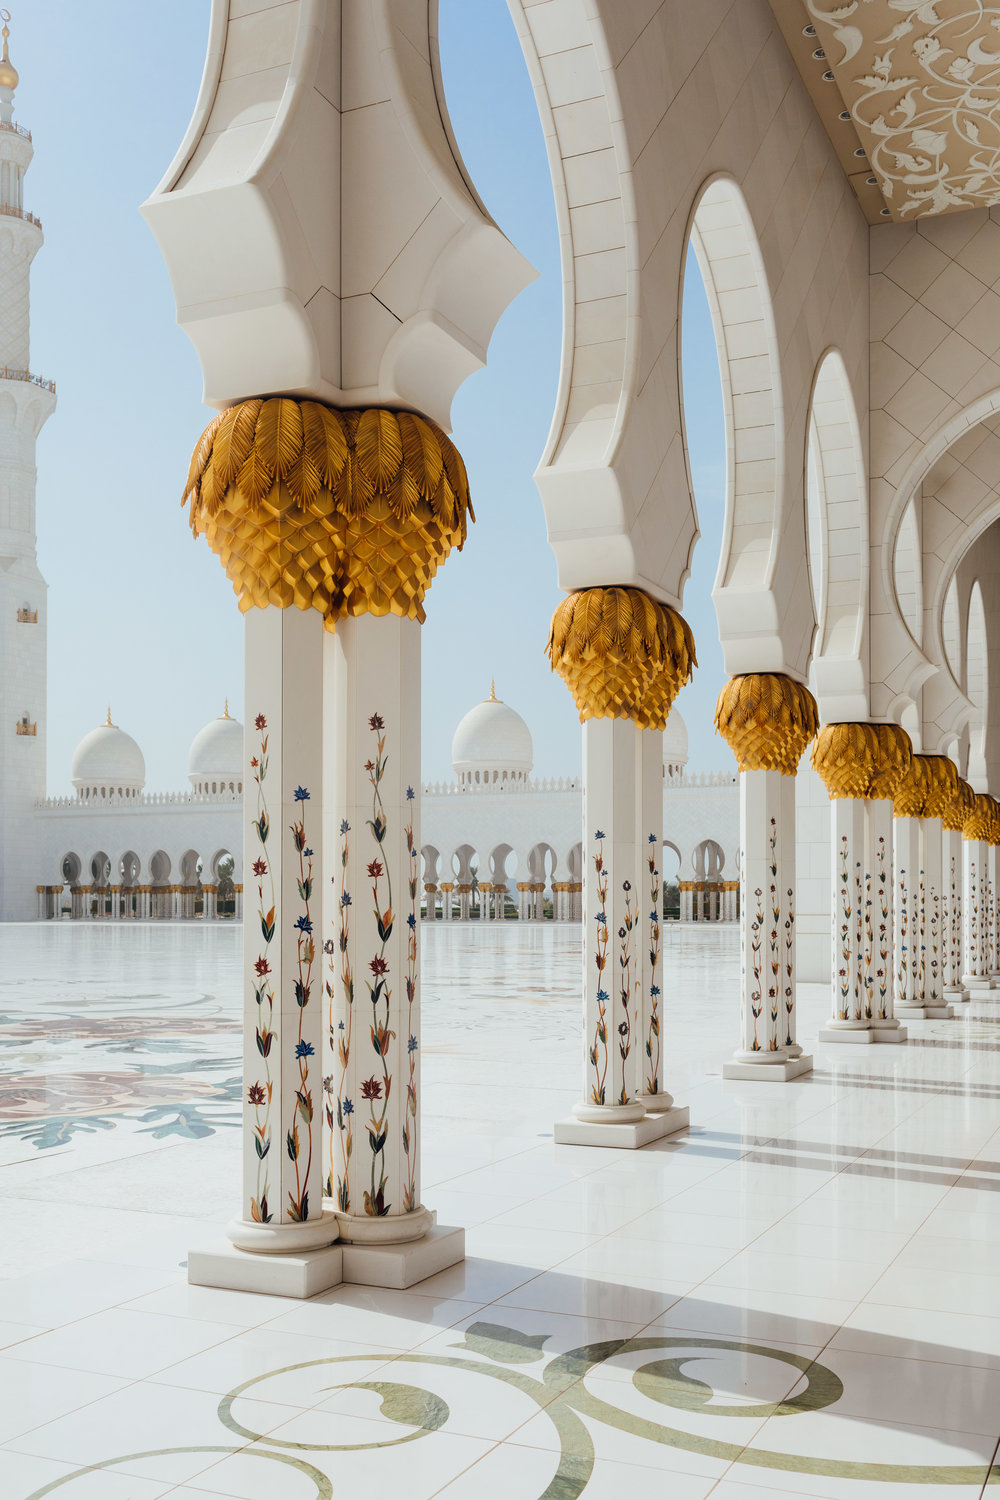 Sheikh Zayed Mosque - 2